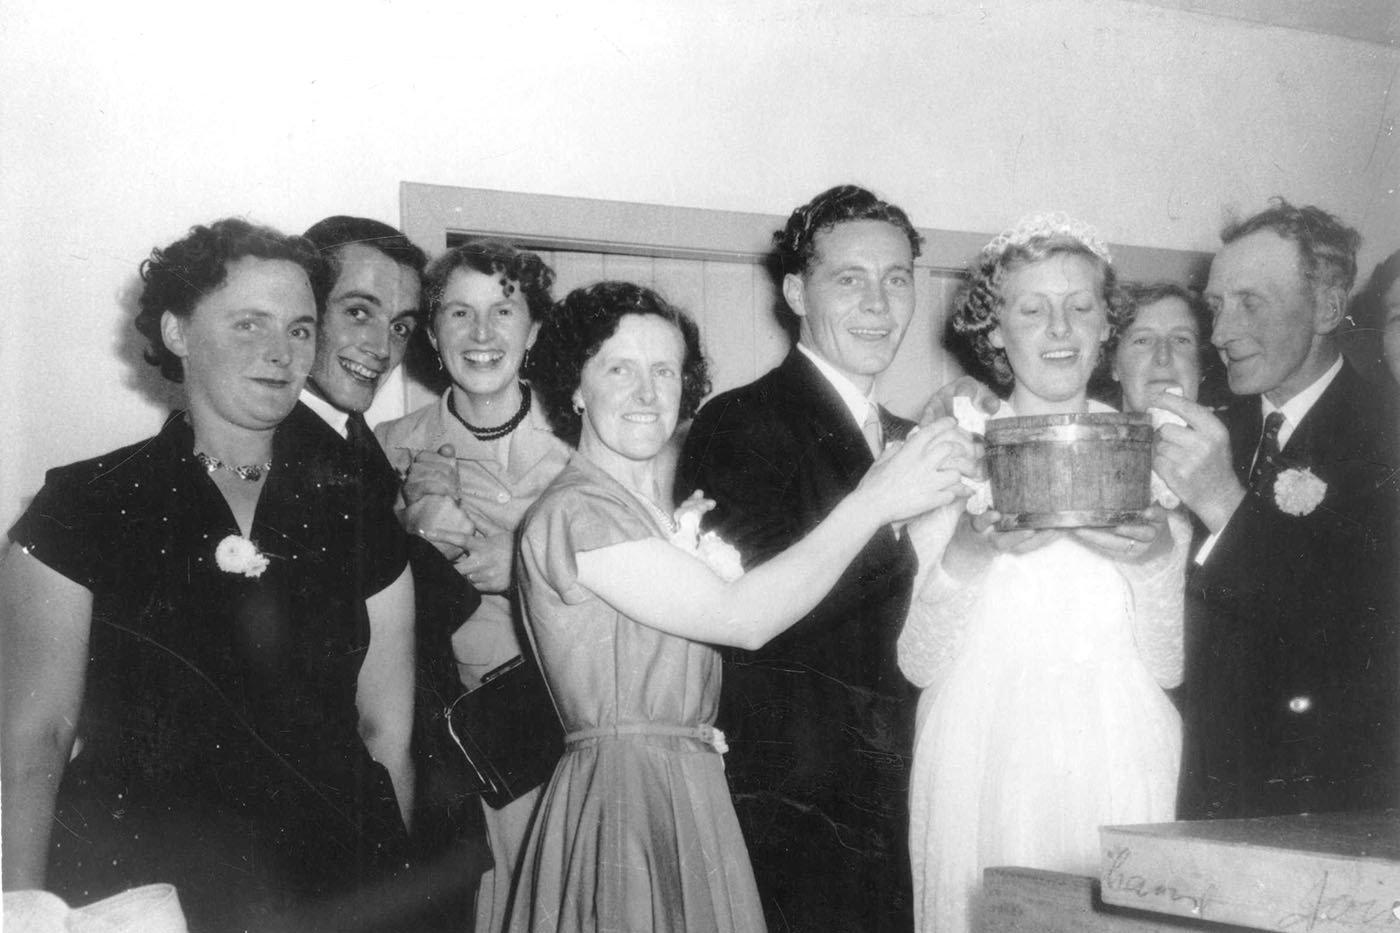 Wedding of Pat Reid and Barbara Chalmers, Stronsay, 1955